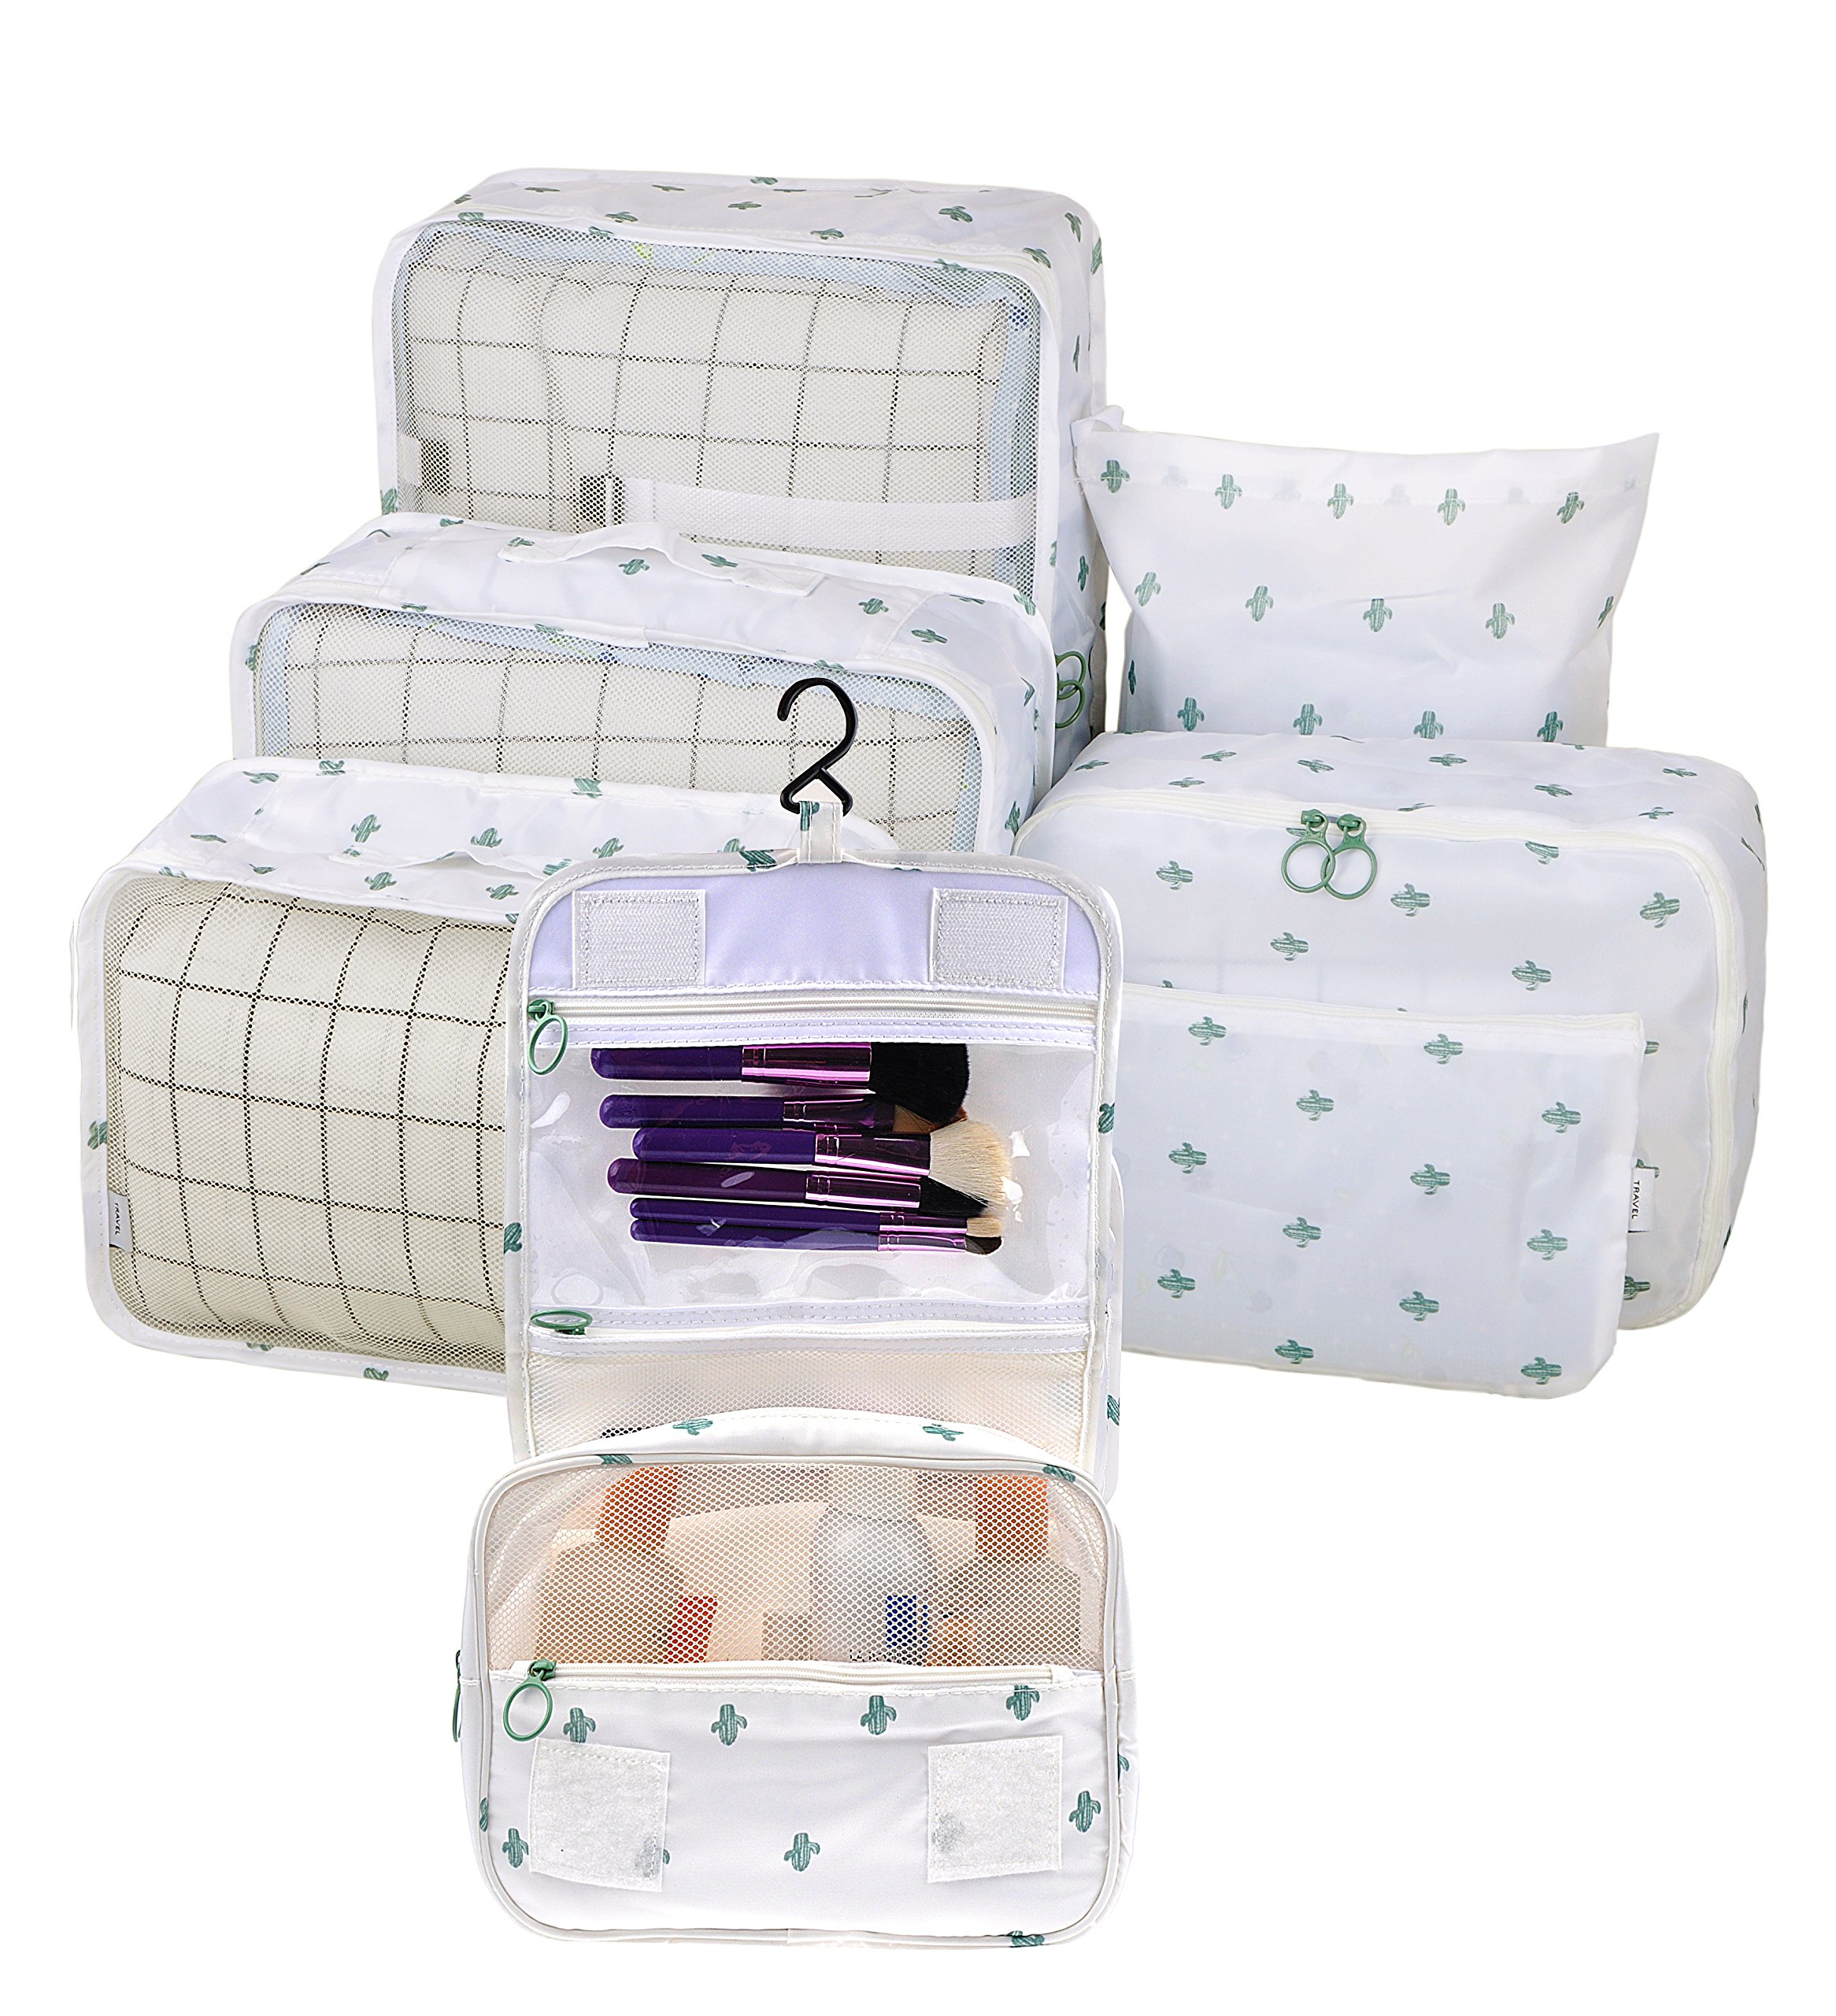 Vercord 7 Set Assorted Packing Organizers, Travel Luggage Mesh Packing Cubes & Underwears Packing Cube & Cosmetics Case & Shoes Makeup Bags, Cactus